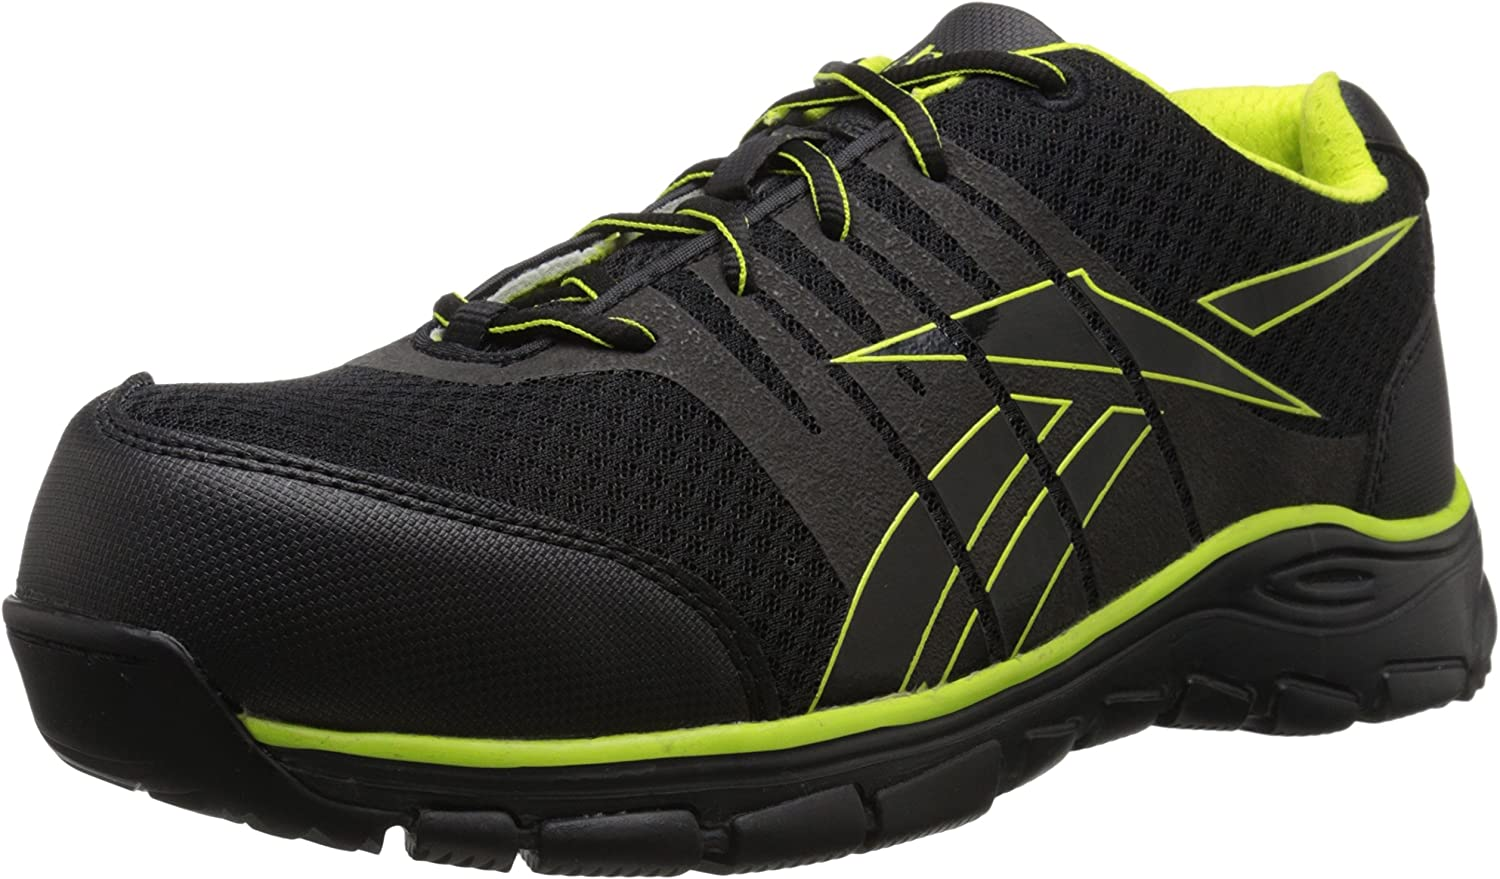 Reebok Work Men's Arion RB4501 ESD Athletic Safety Shoe